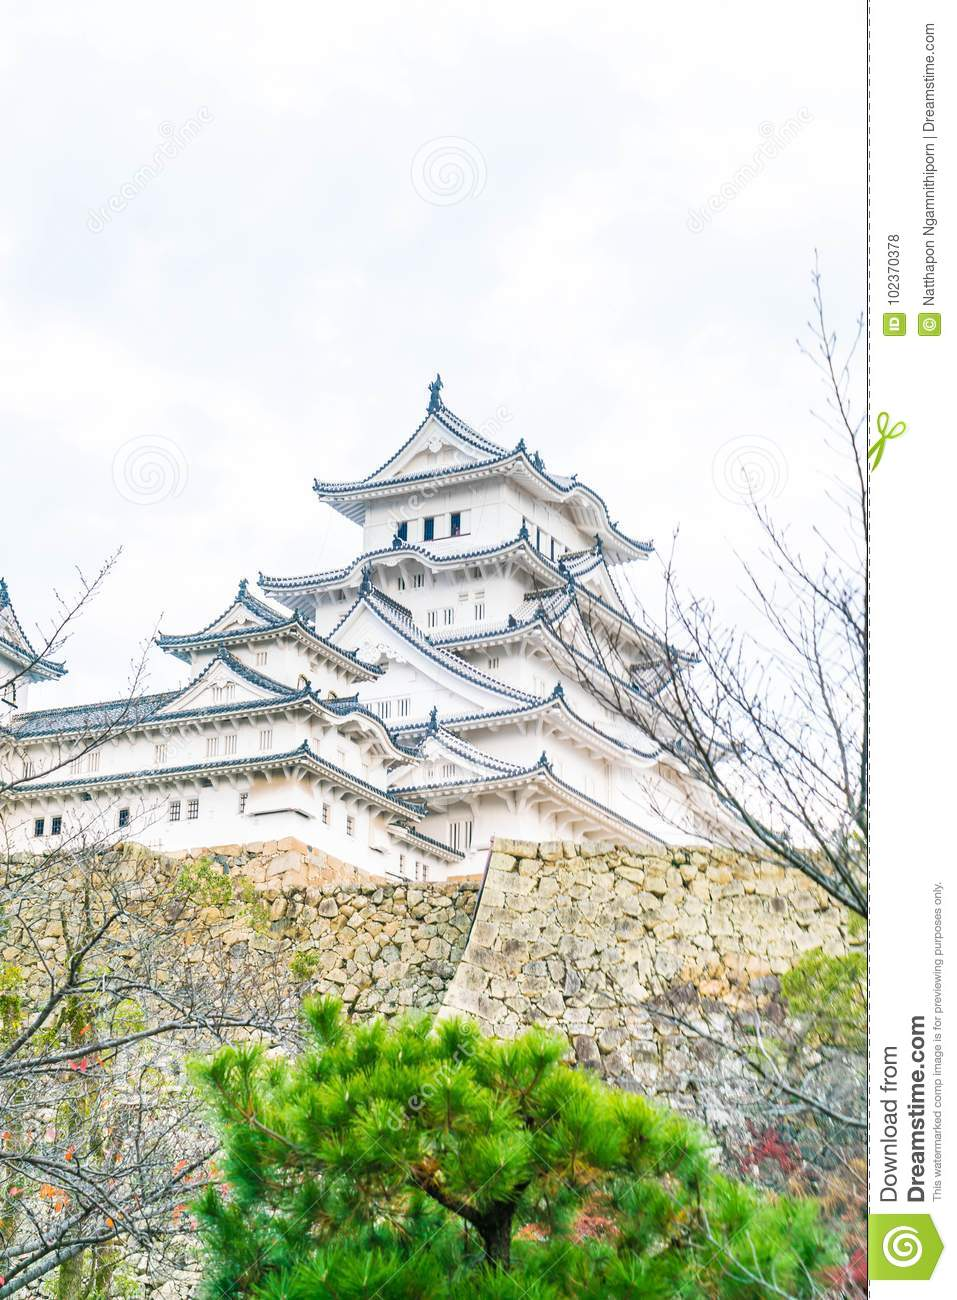 Himeji castle in hyogo prefecture japan unesco world heritage download himeji castle in hyogo prefecture japan unesco world heritage stock photo image publicscrutiny Choice Image